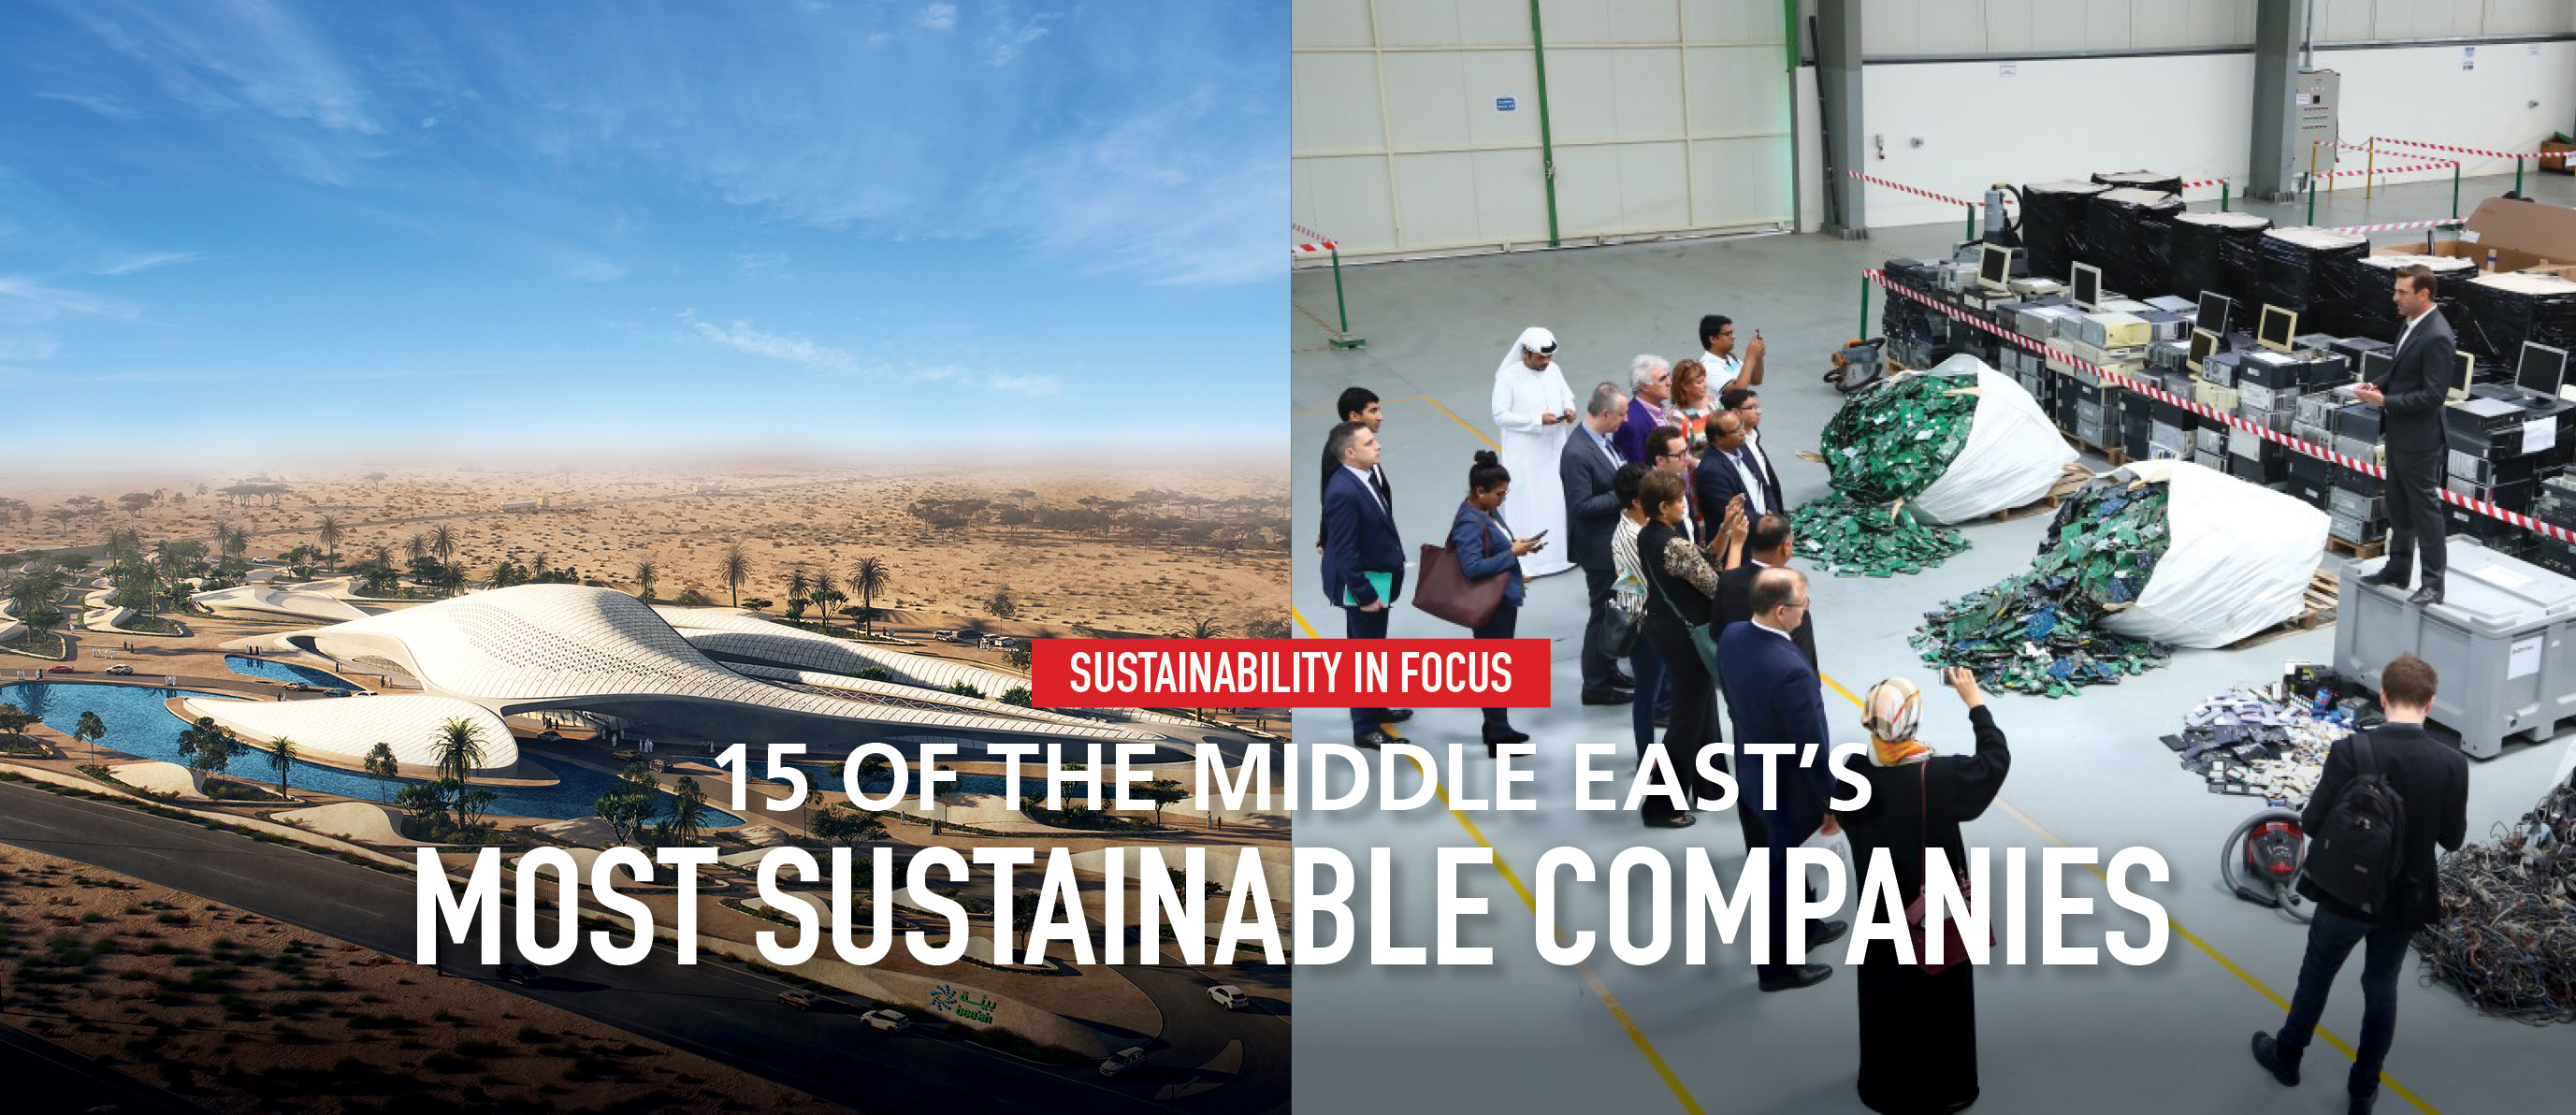 15 of The Middle East's Most Sustainable Companies